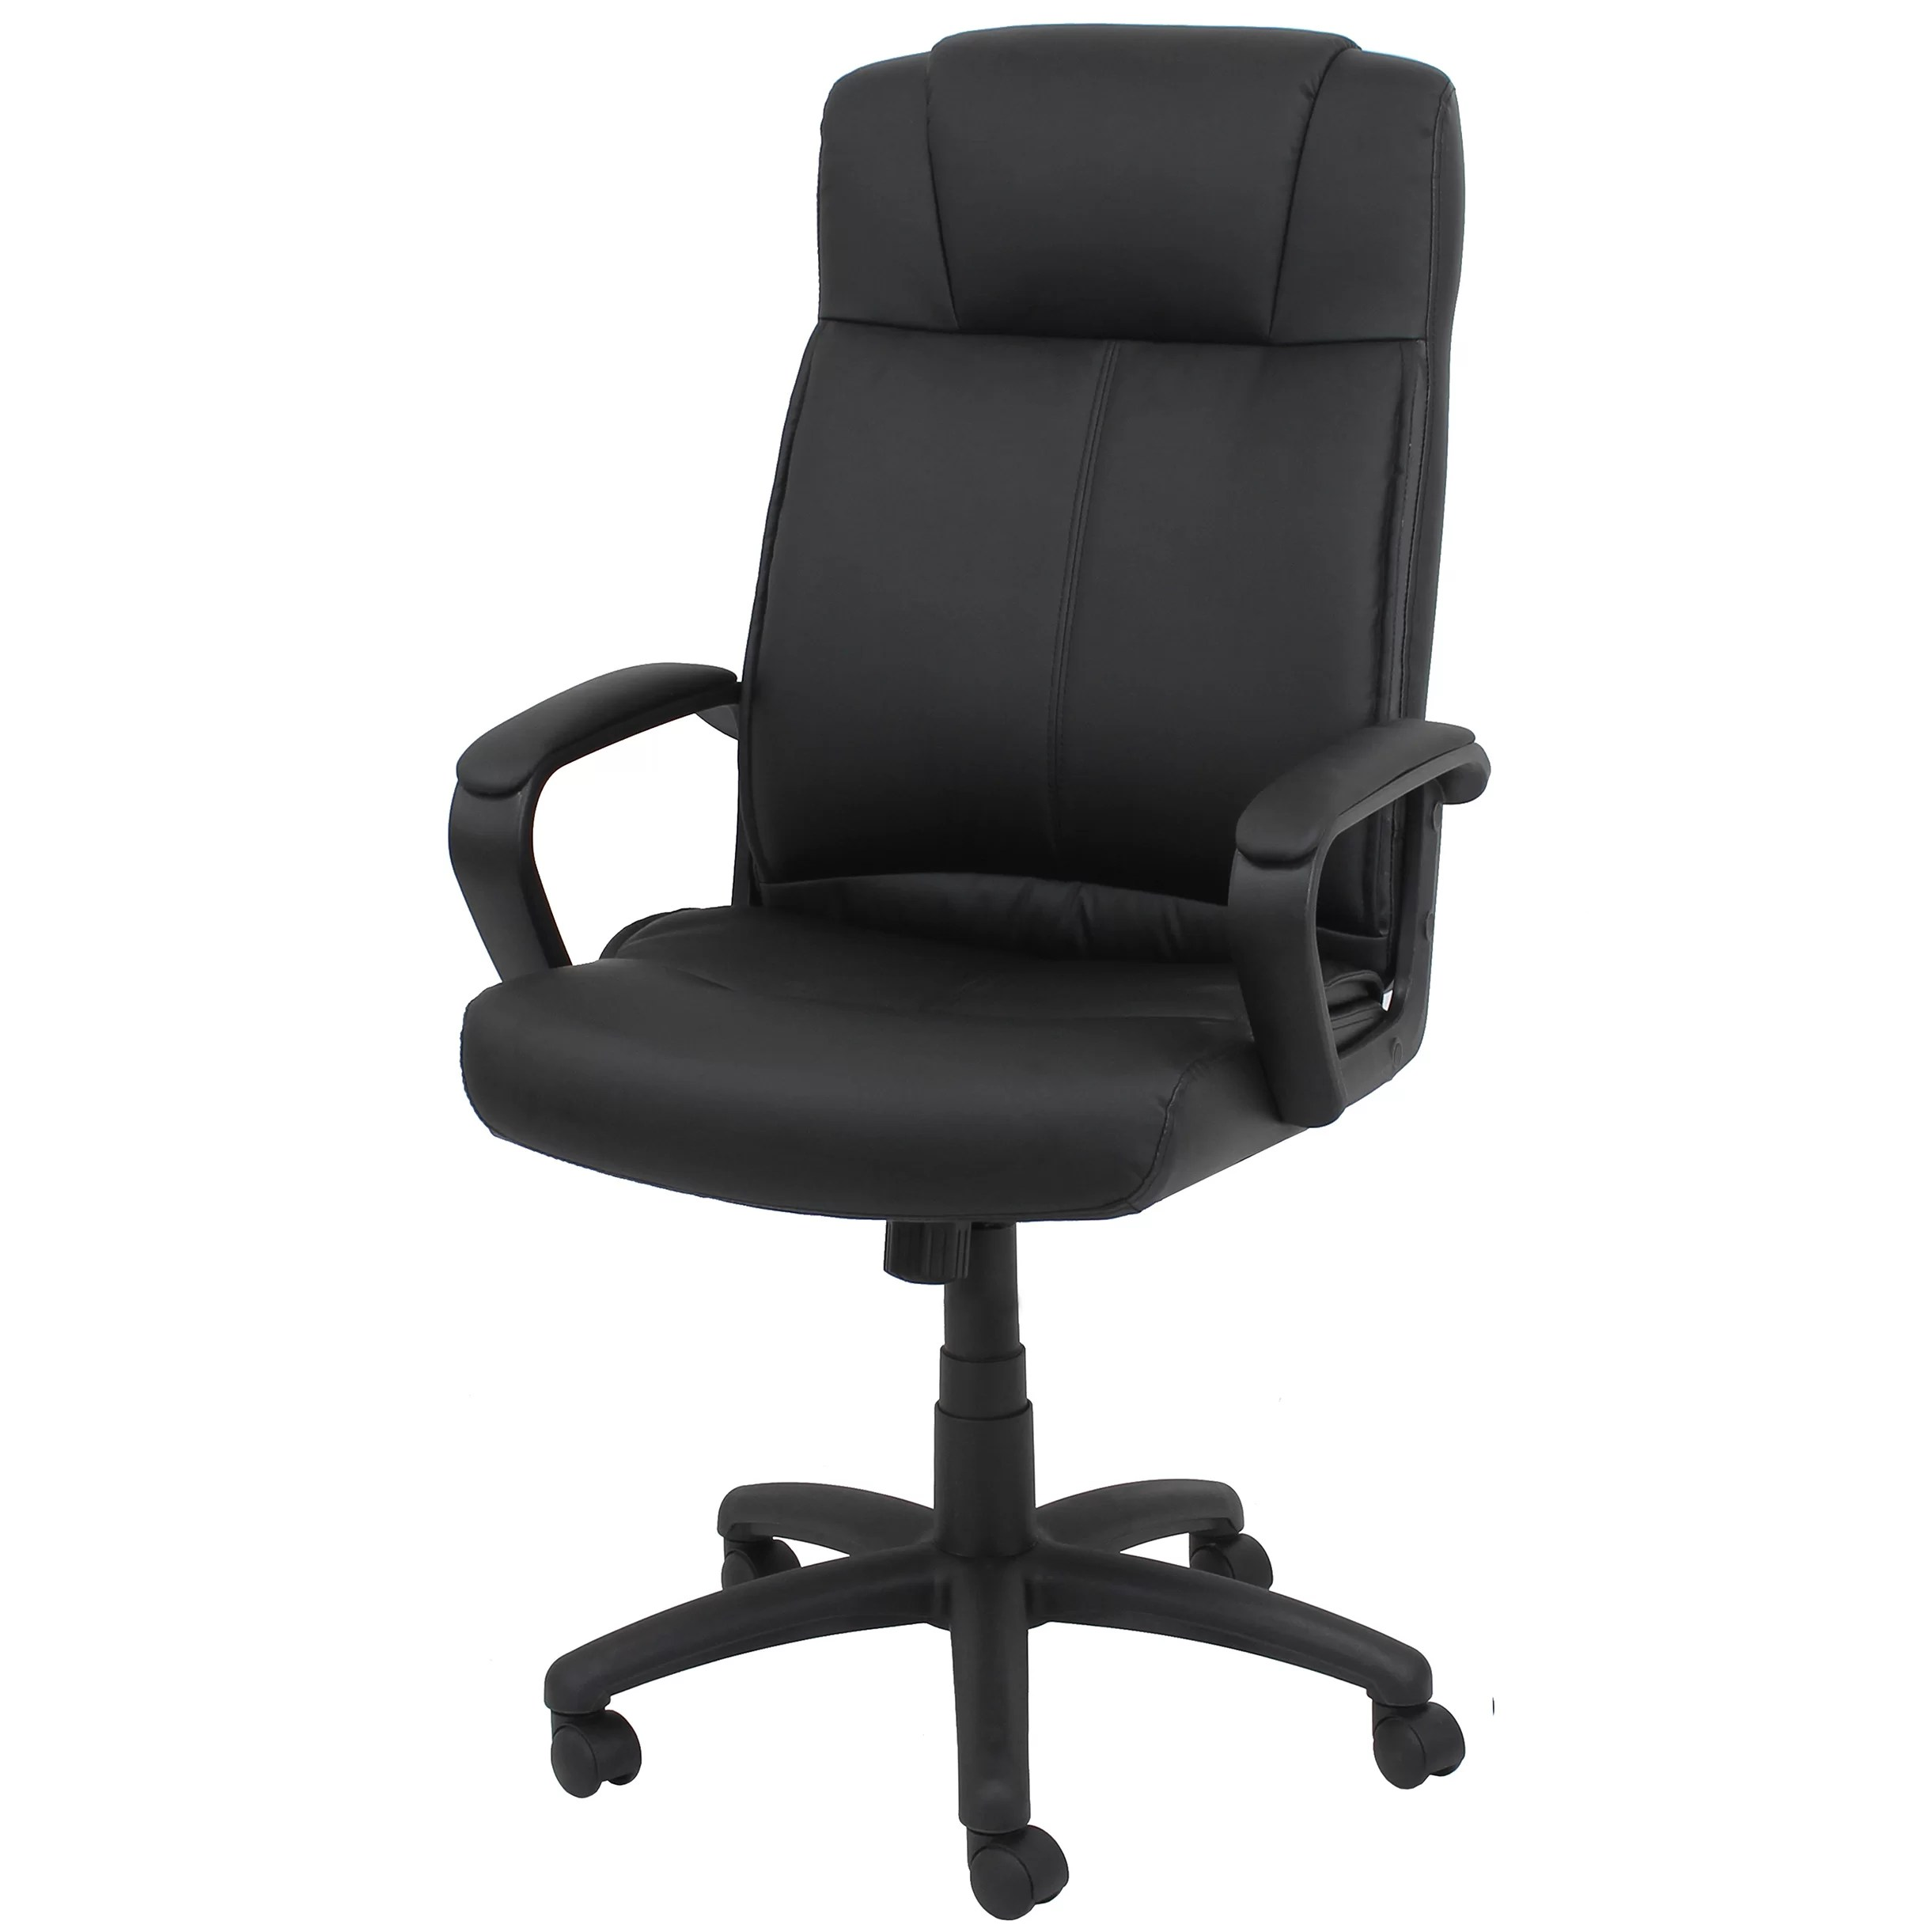 Office Chair With Arms Ofm Essentials High Back Leather Desk Chair With Arms